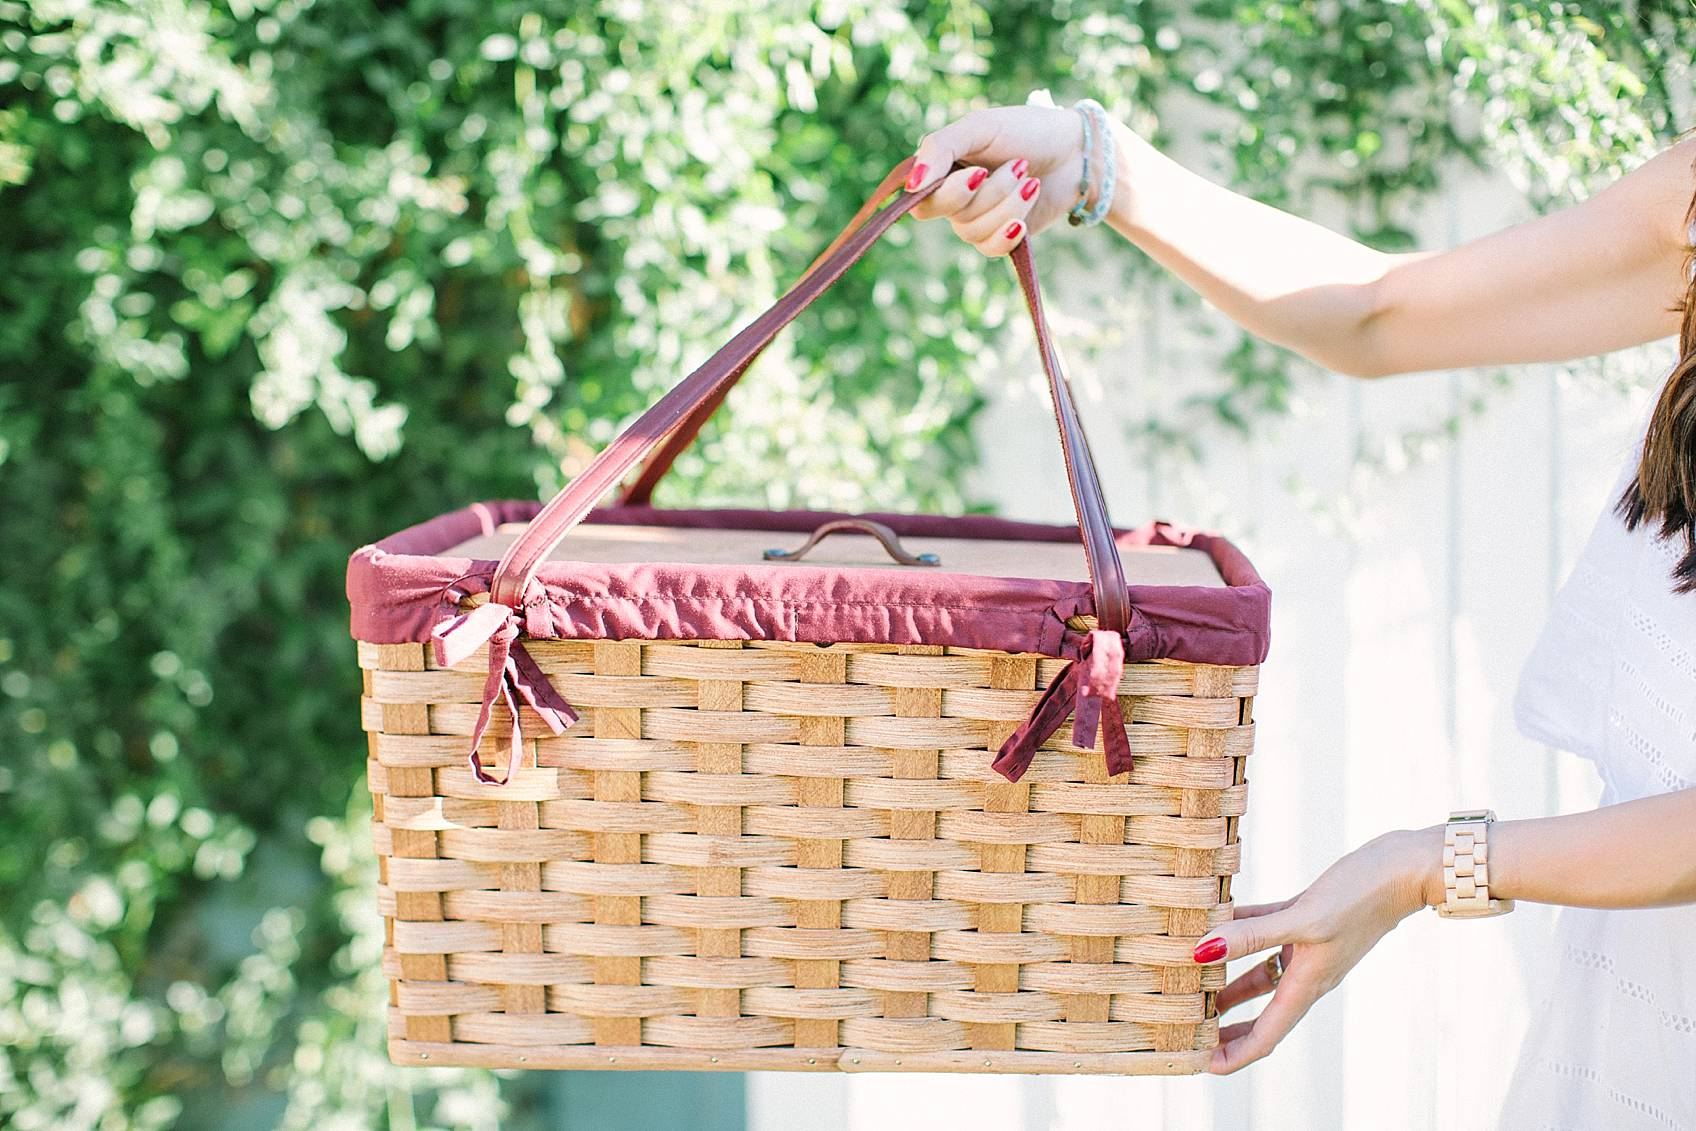 amish made picnic basket diana holding it infront of a white fence with green vines in background